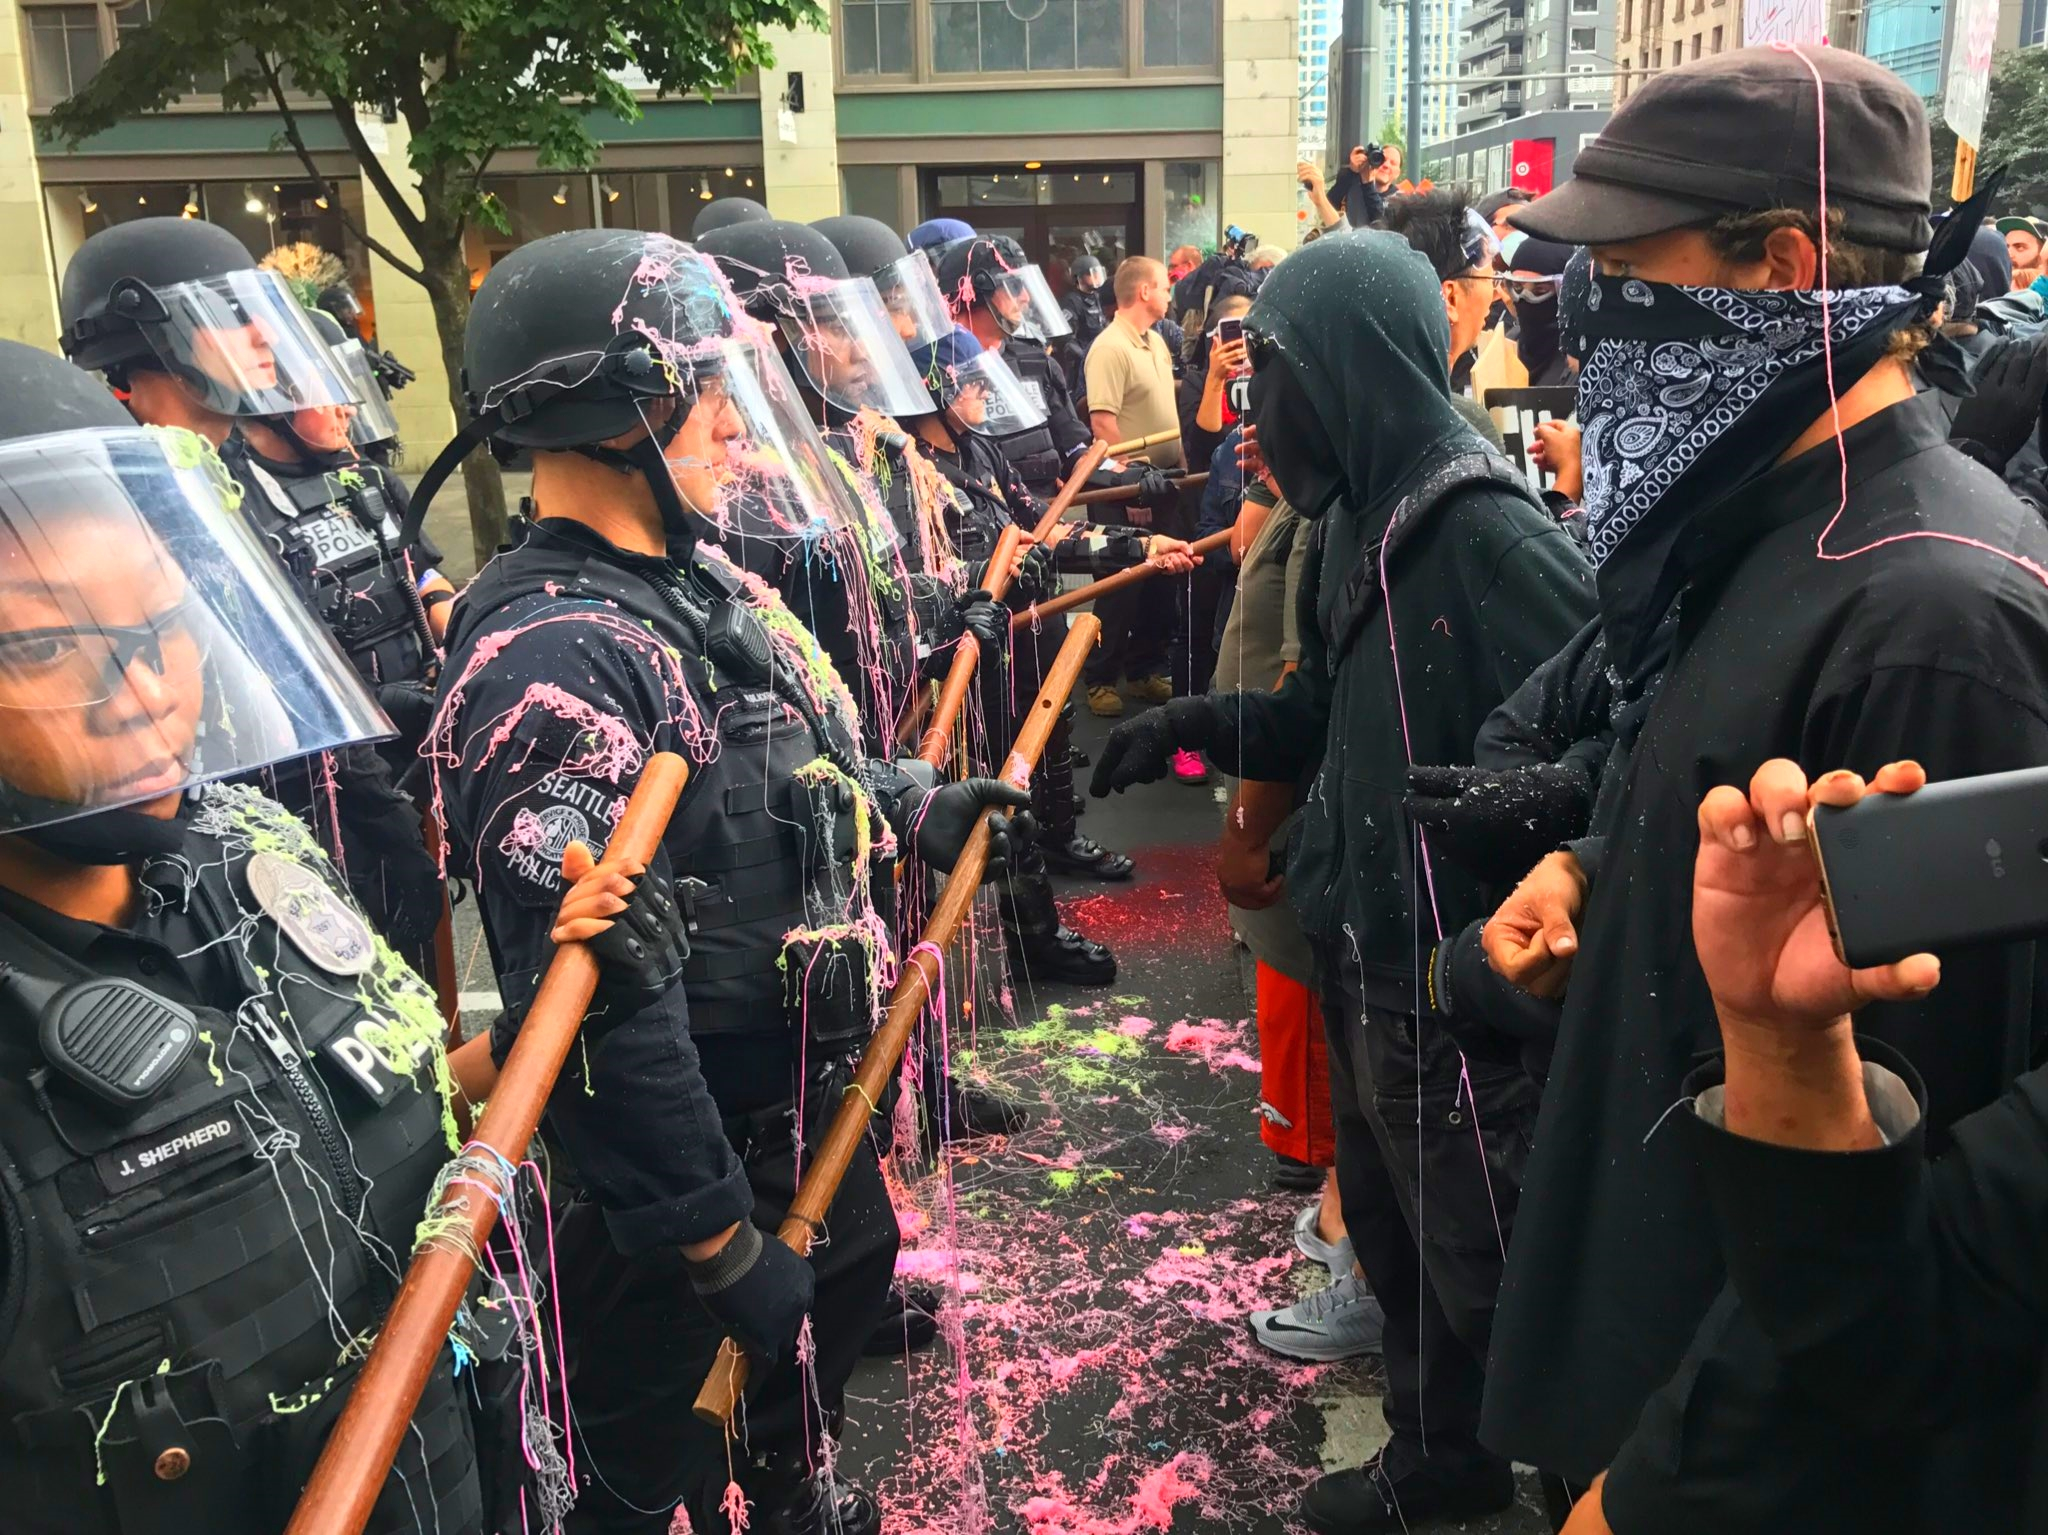 IMAGE: Protesters and police in Seattle